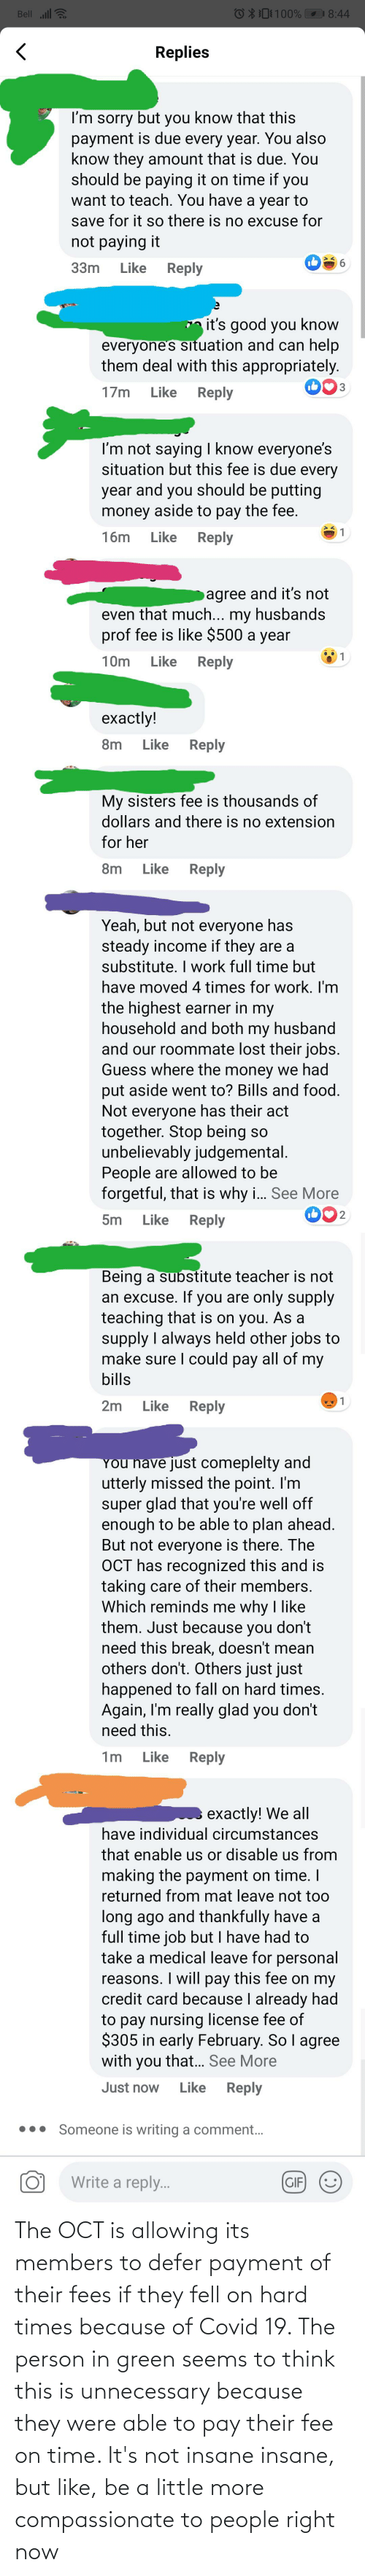 oct: The OCT is allowing its members to defer payment of their fees if they fell on hard times because of Covid 19. The person in green seems to think this is unnecessary because they were able to pay their fee on time. It's not insane insane, but like, be a little more compassionate to people right now